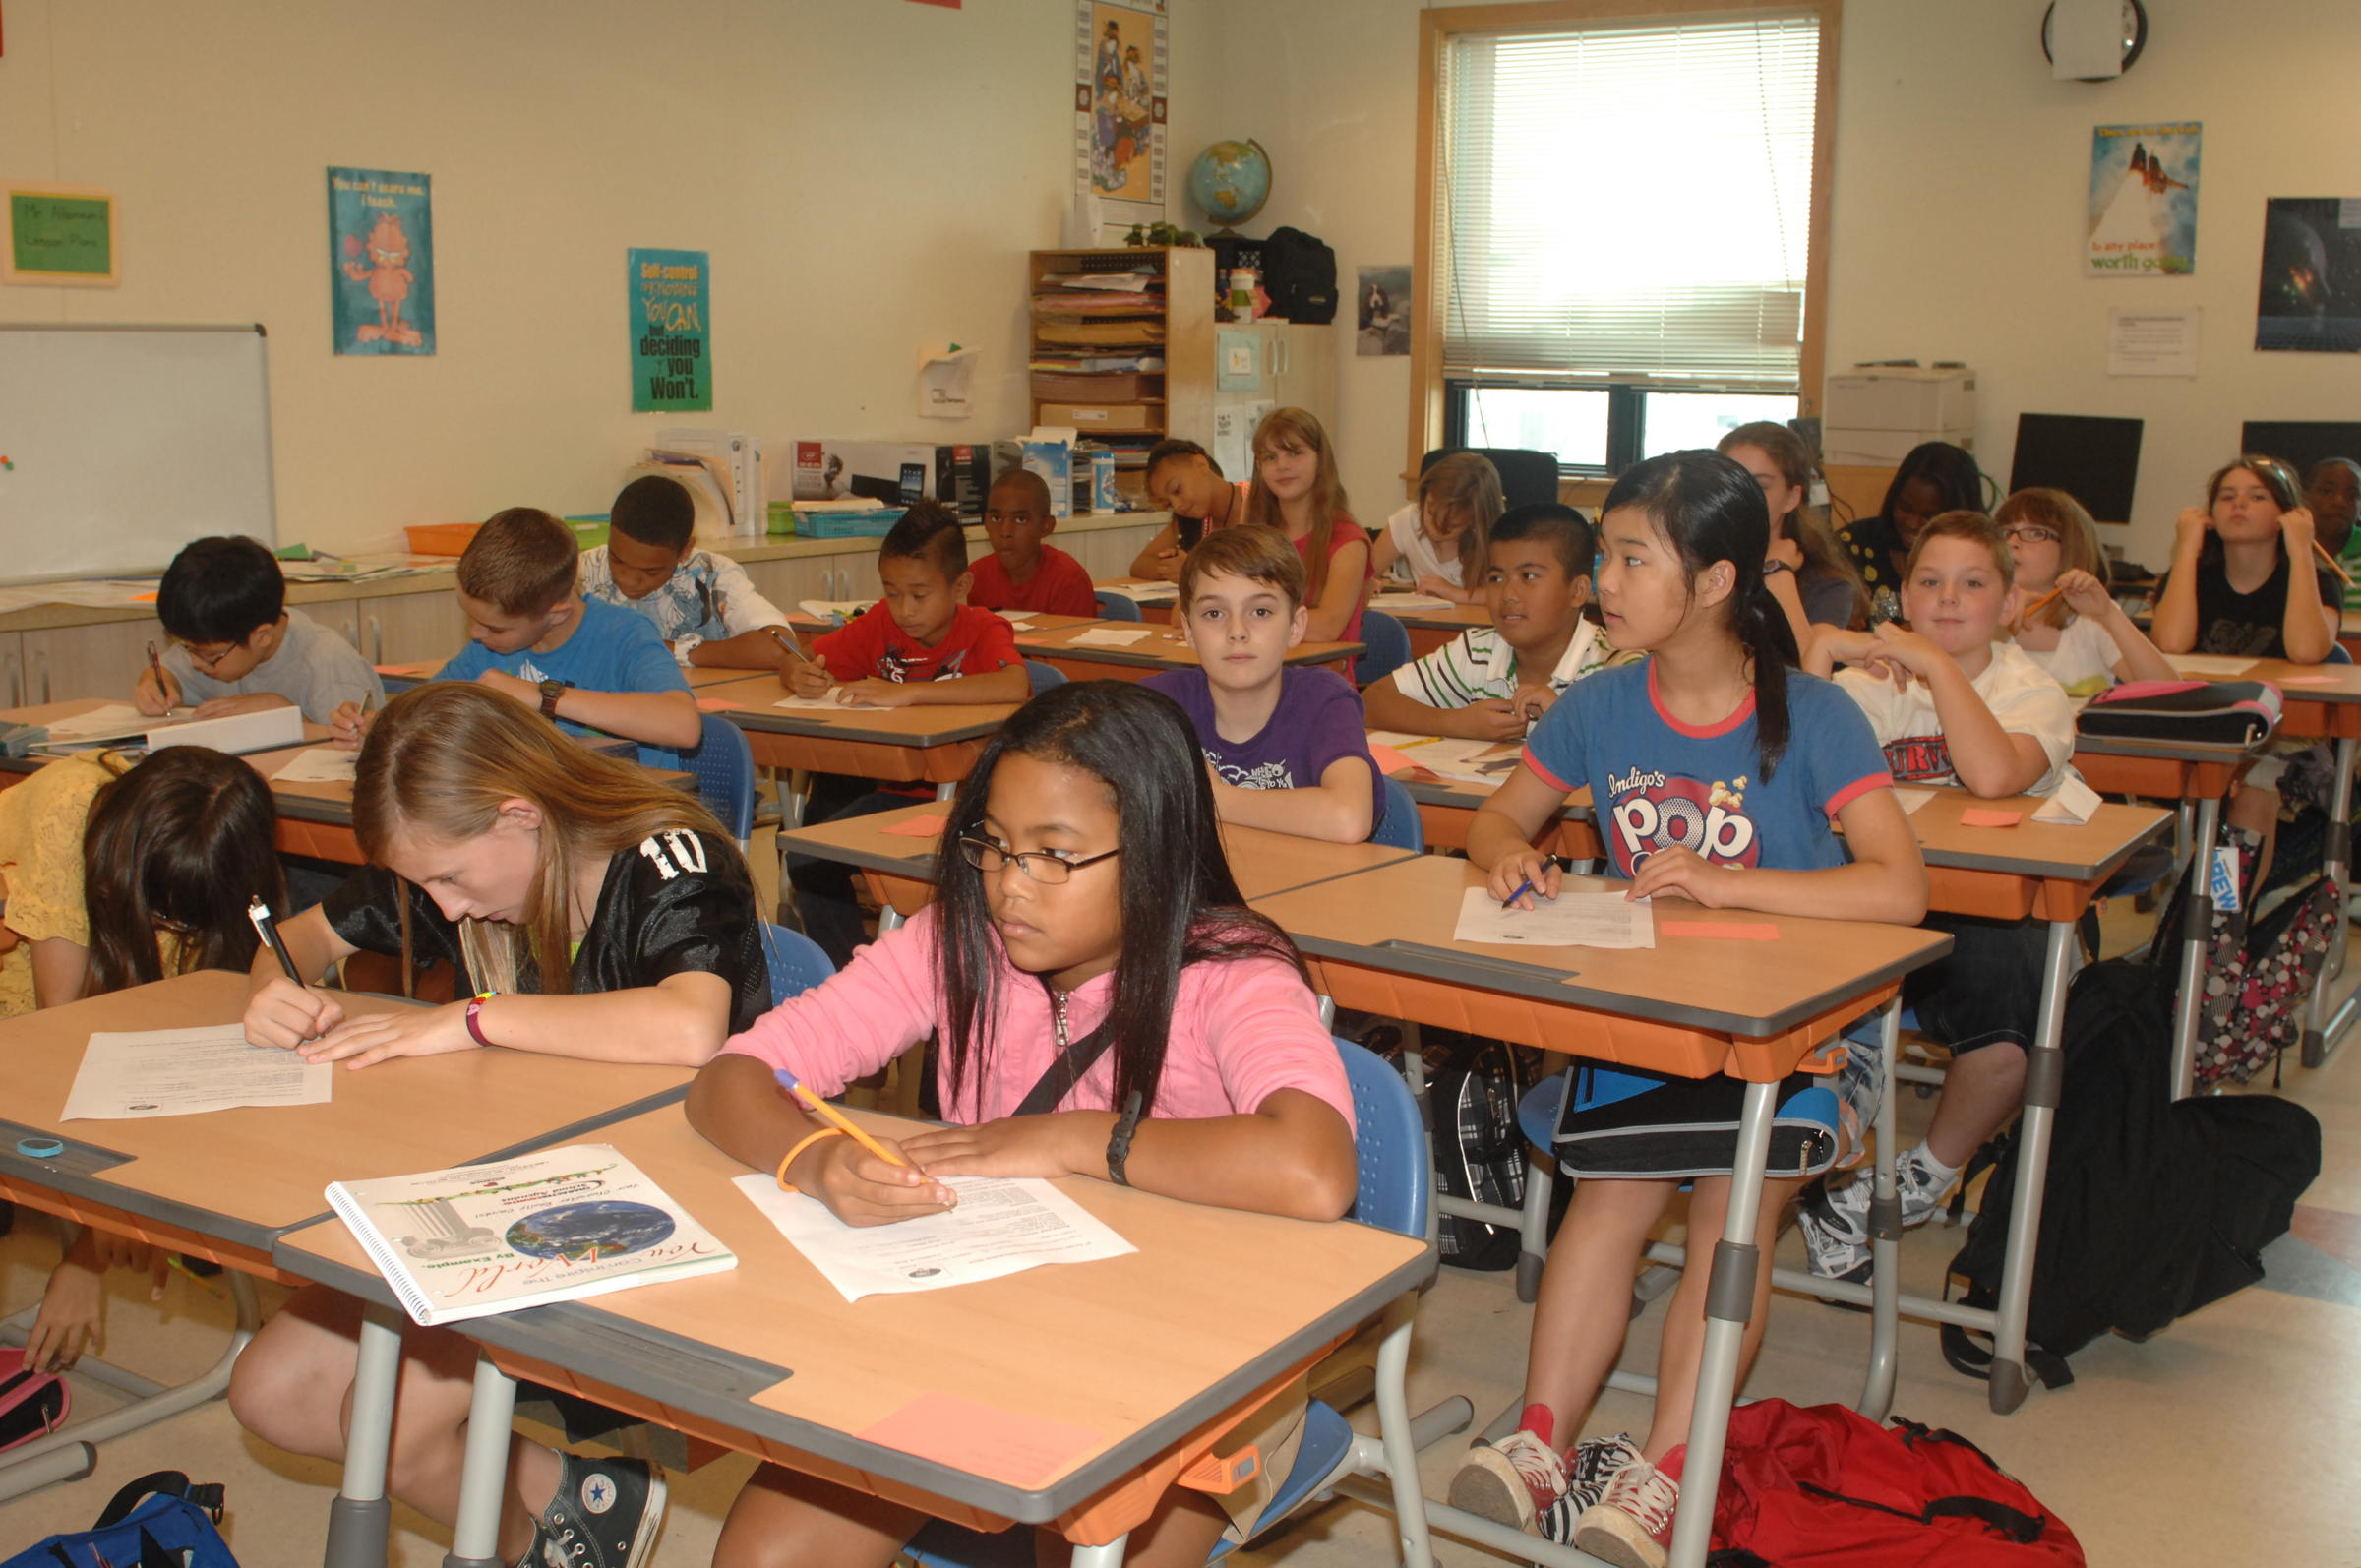 private elementary school essays Applying to private school you're likely going to need to write an admission essay skip the sample admission essays and check out these tips.